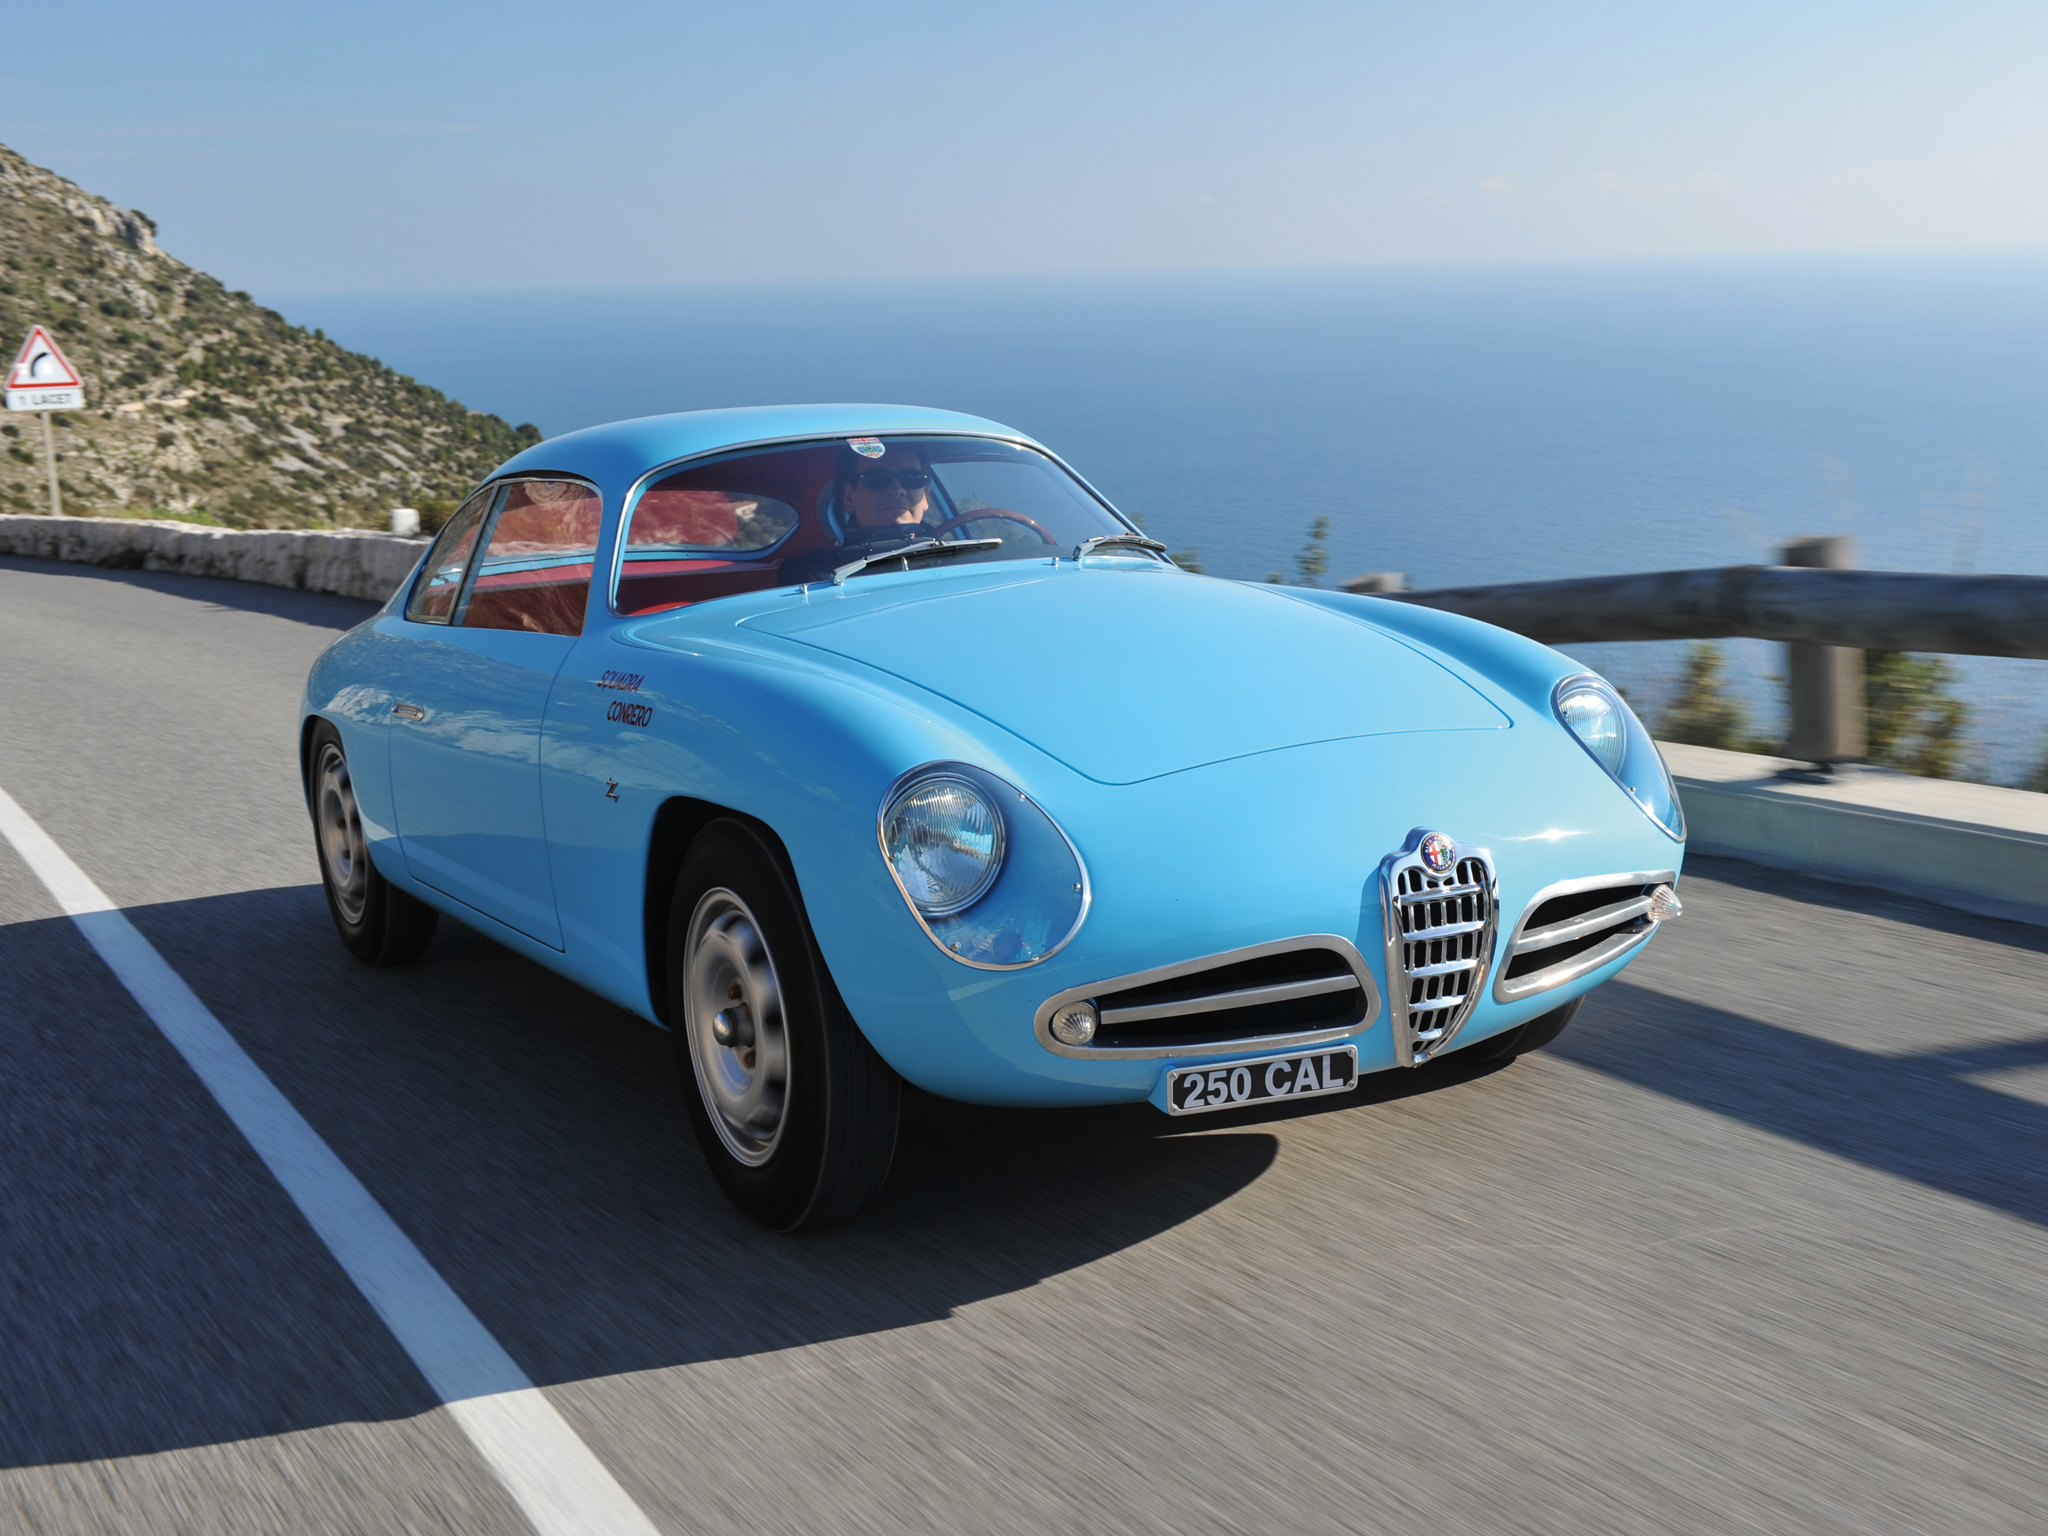 Alfa romeo svz photo - 4